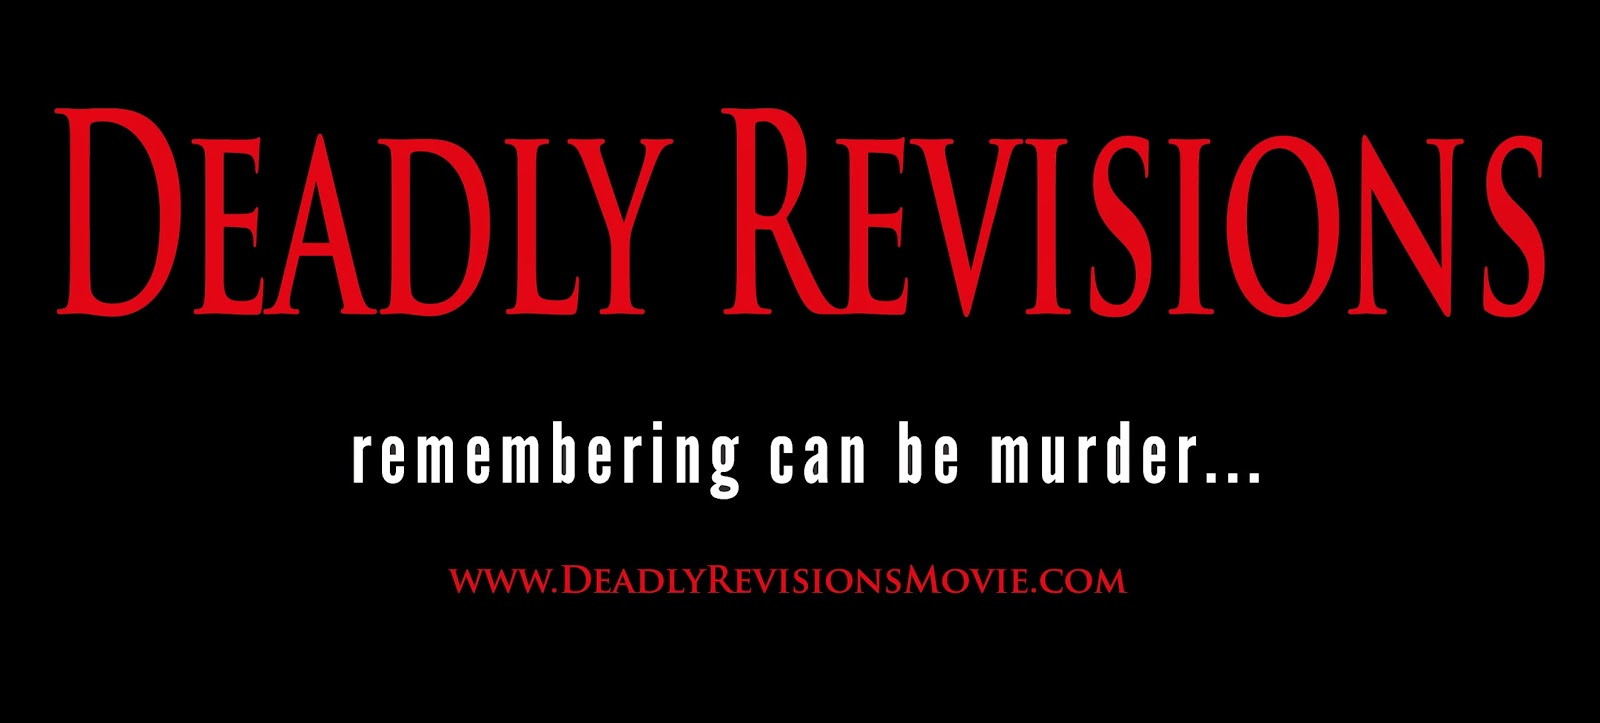 www.deadlyrevisionsmovie.com